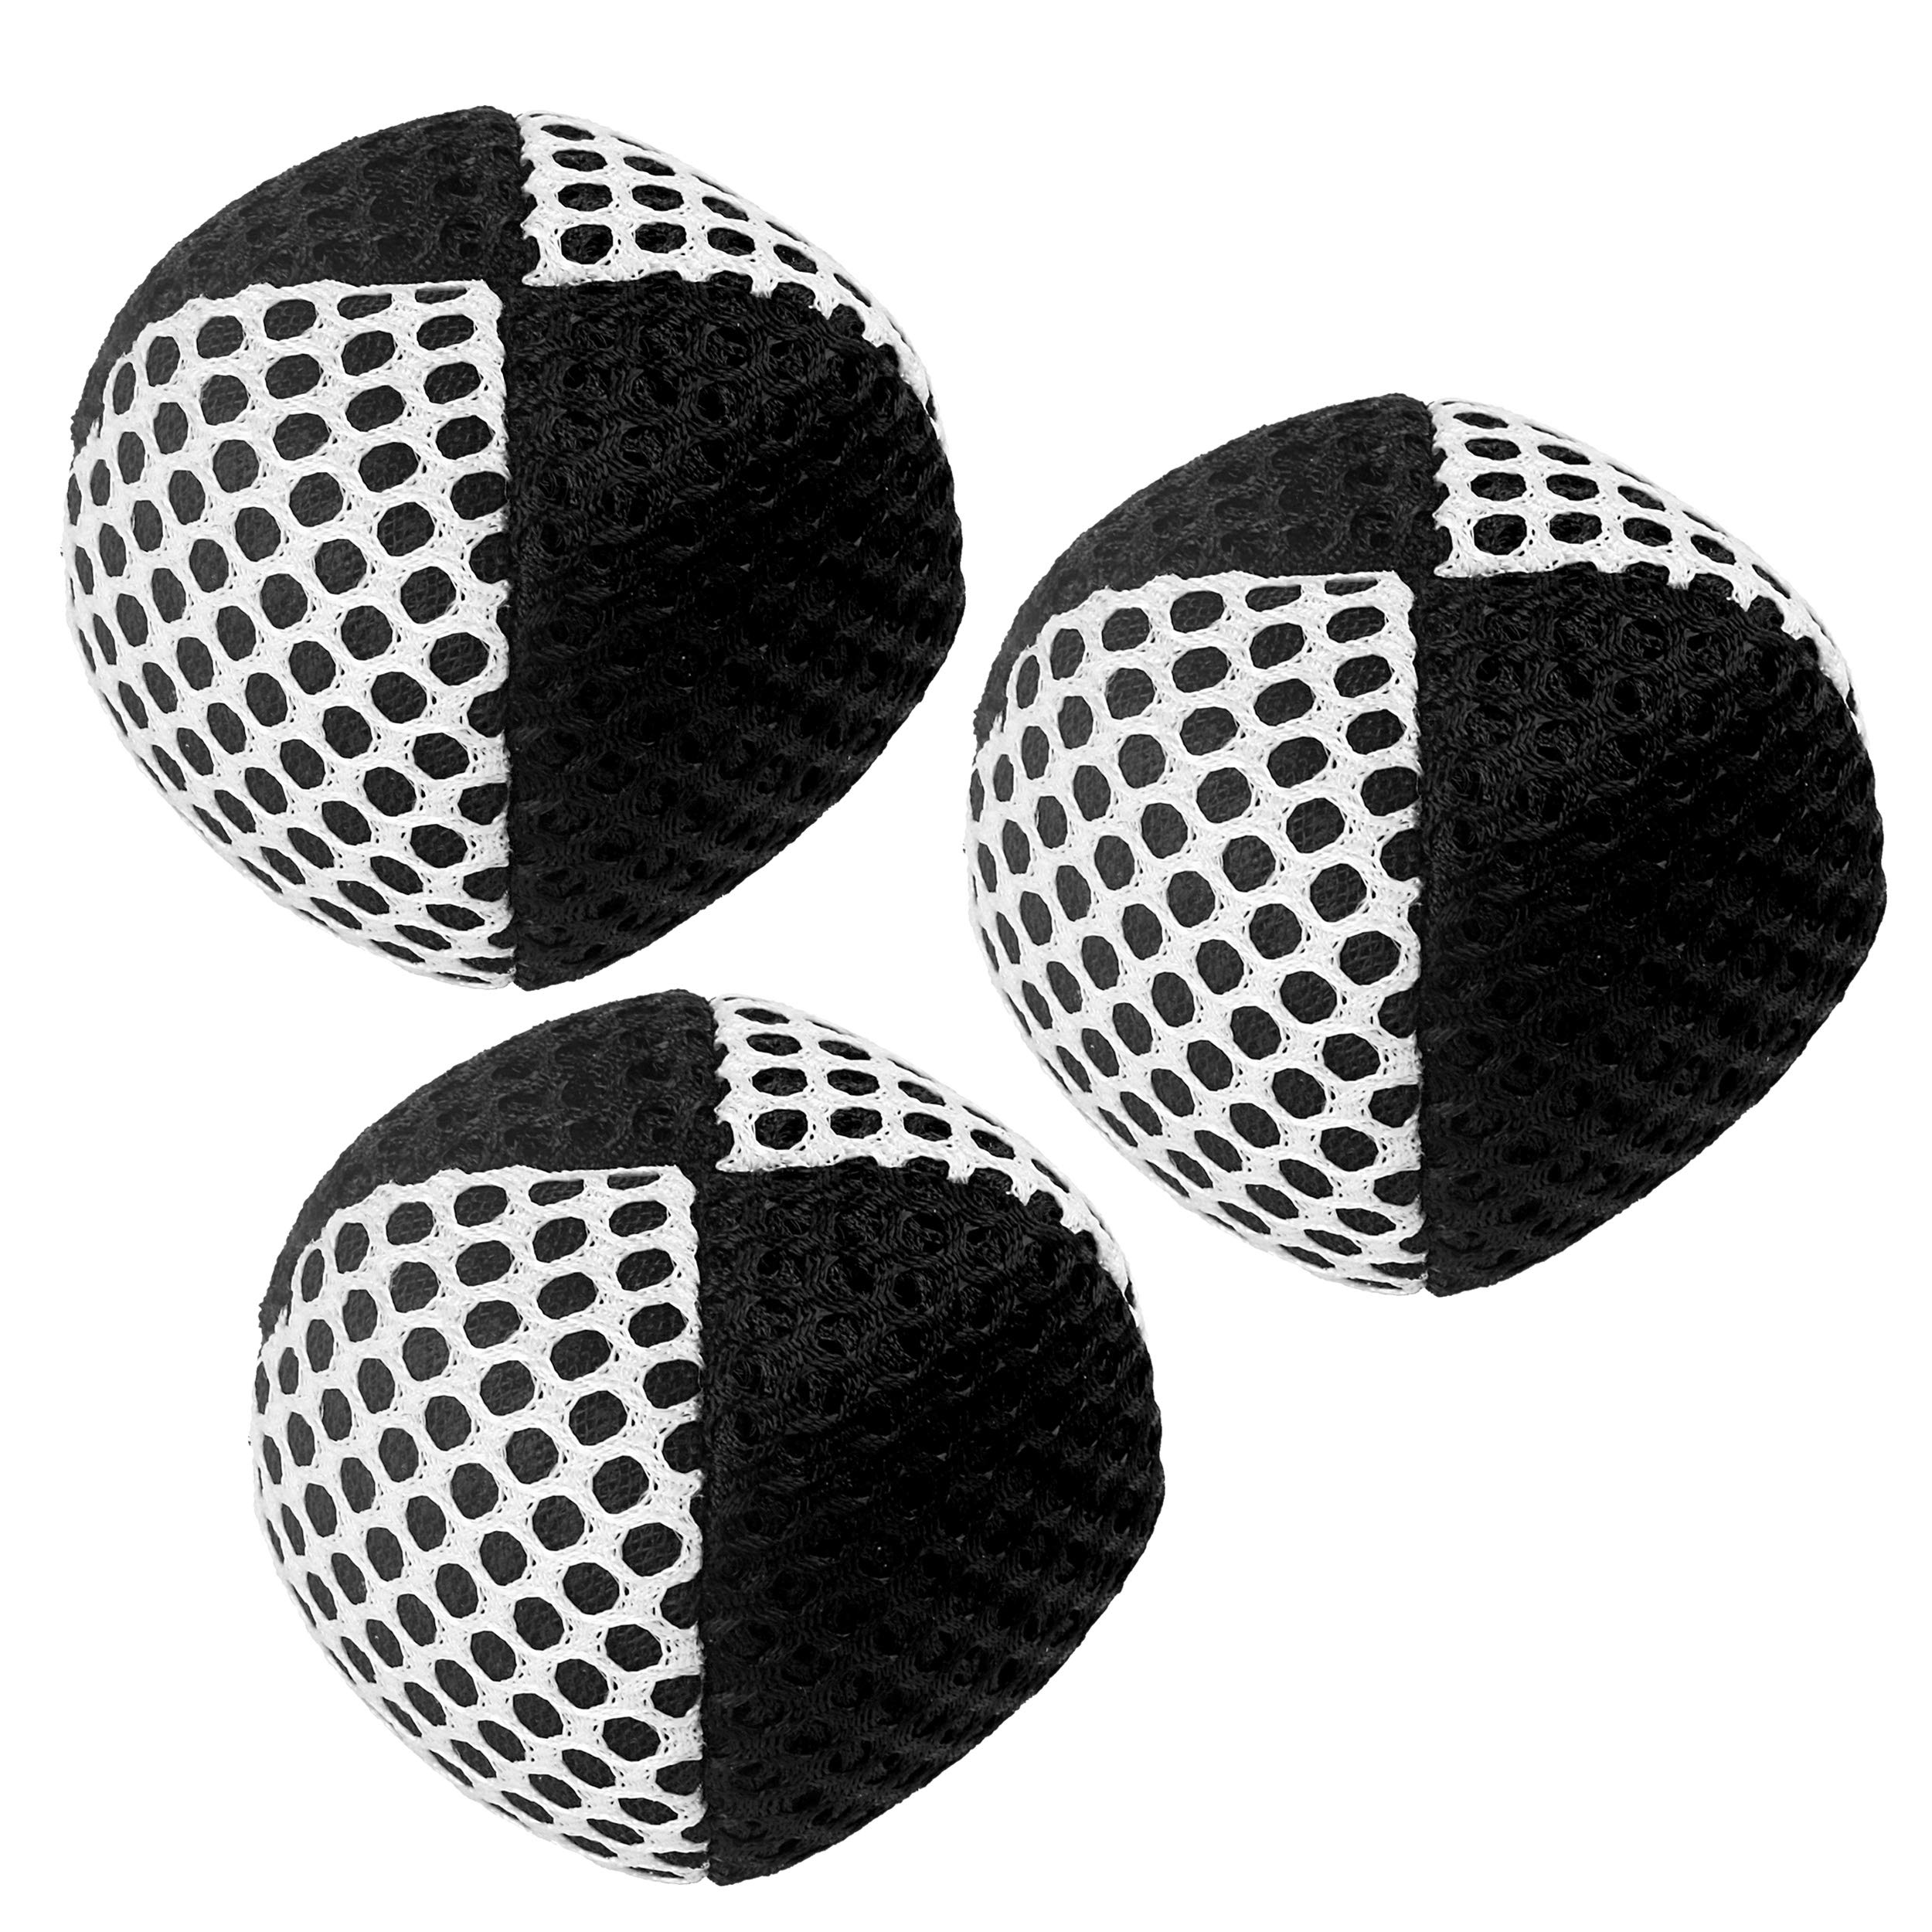 Speevers Xballs Juggling Balls Professional Set of 3 Fresh Design 3.9 Oz Each - 10 Beautiful Colors Available - 2 Layers of Net Carry Case - Choice of The World Champions! 110g (Black - White)